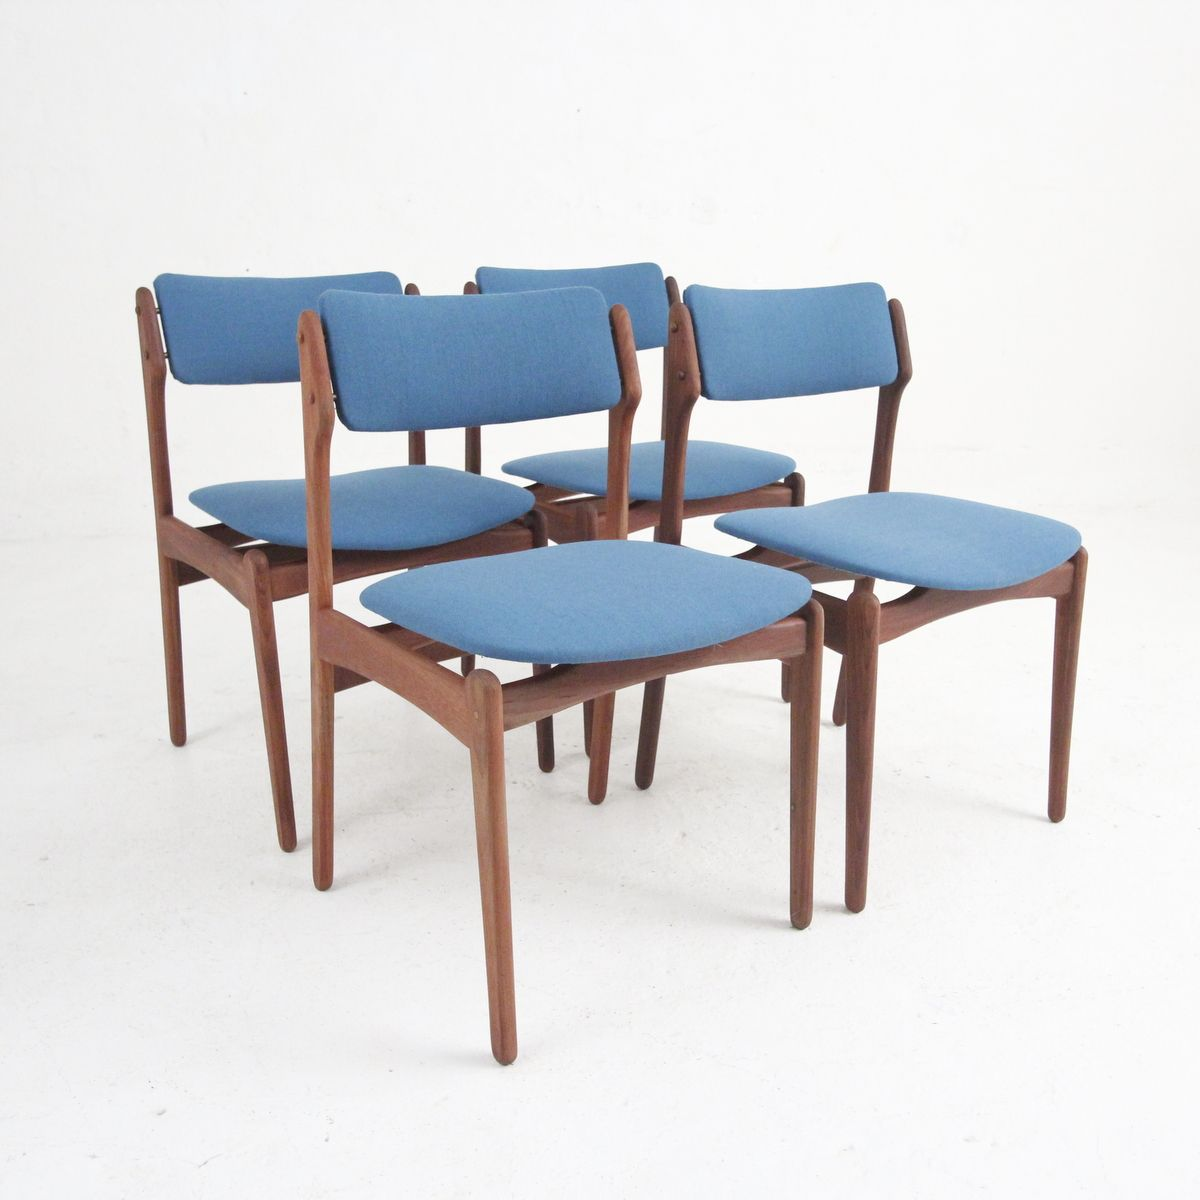 danish modern dining chairs desk chair home goods vintage in rosewood set of 4